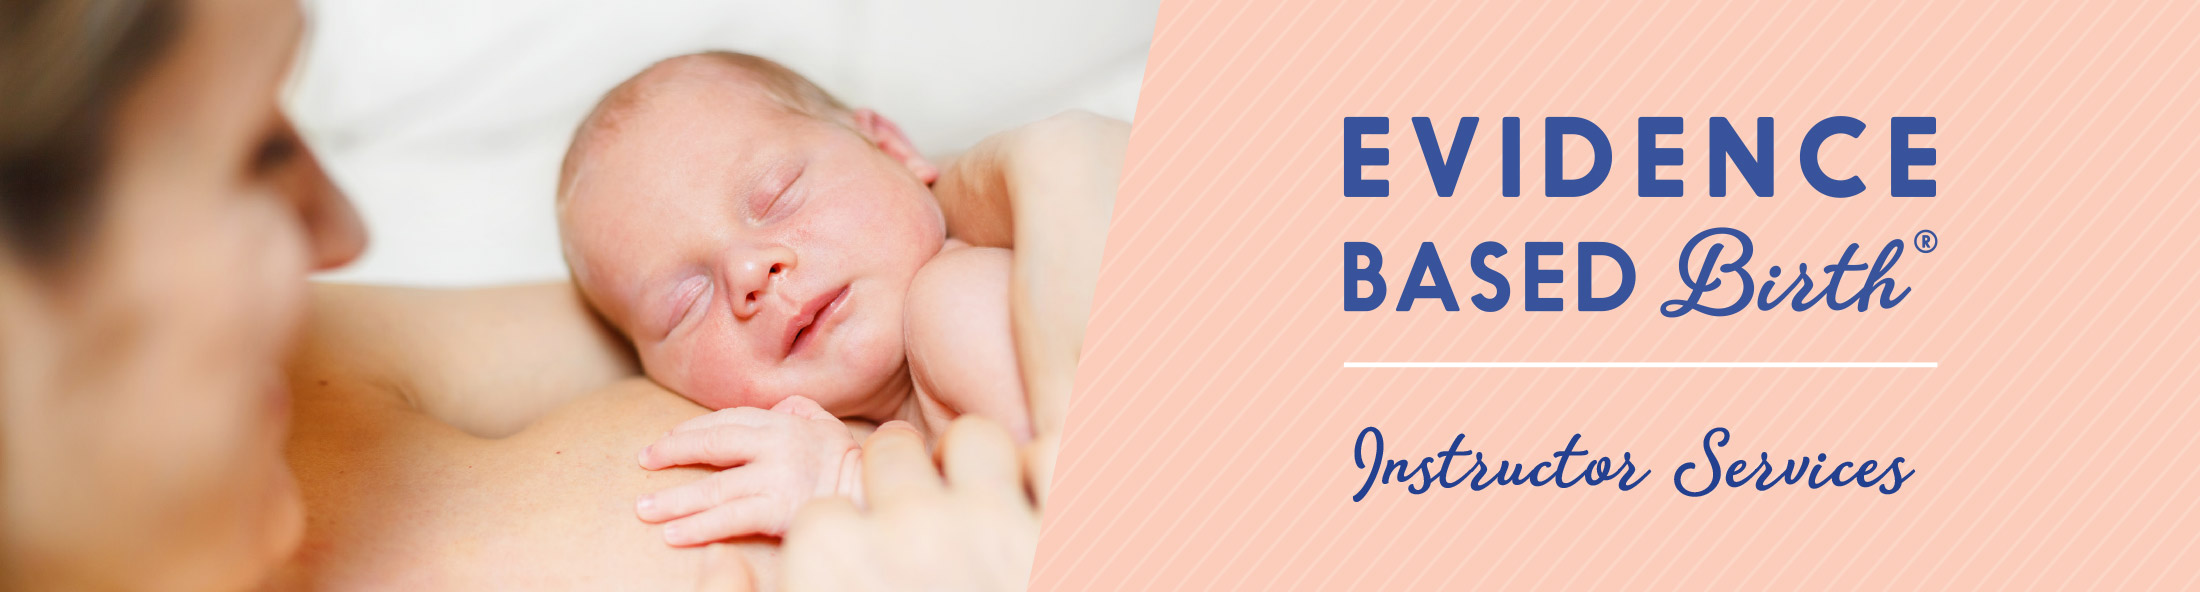 Evidence Based Birth® - Evidence That Empowers! | Continuing Education for birth professionals | Birth preparation for parents